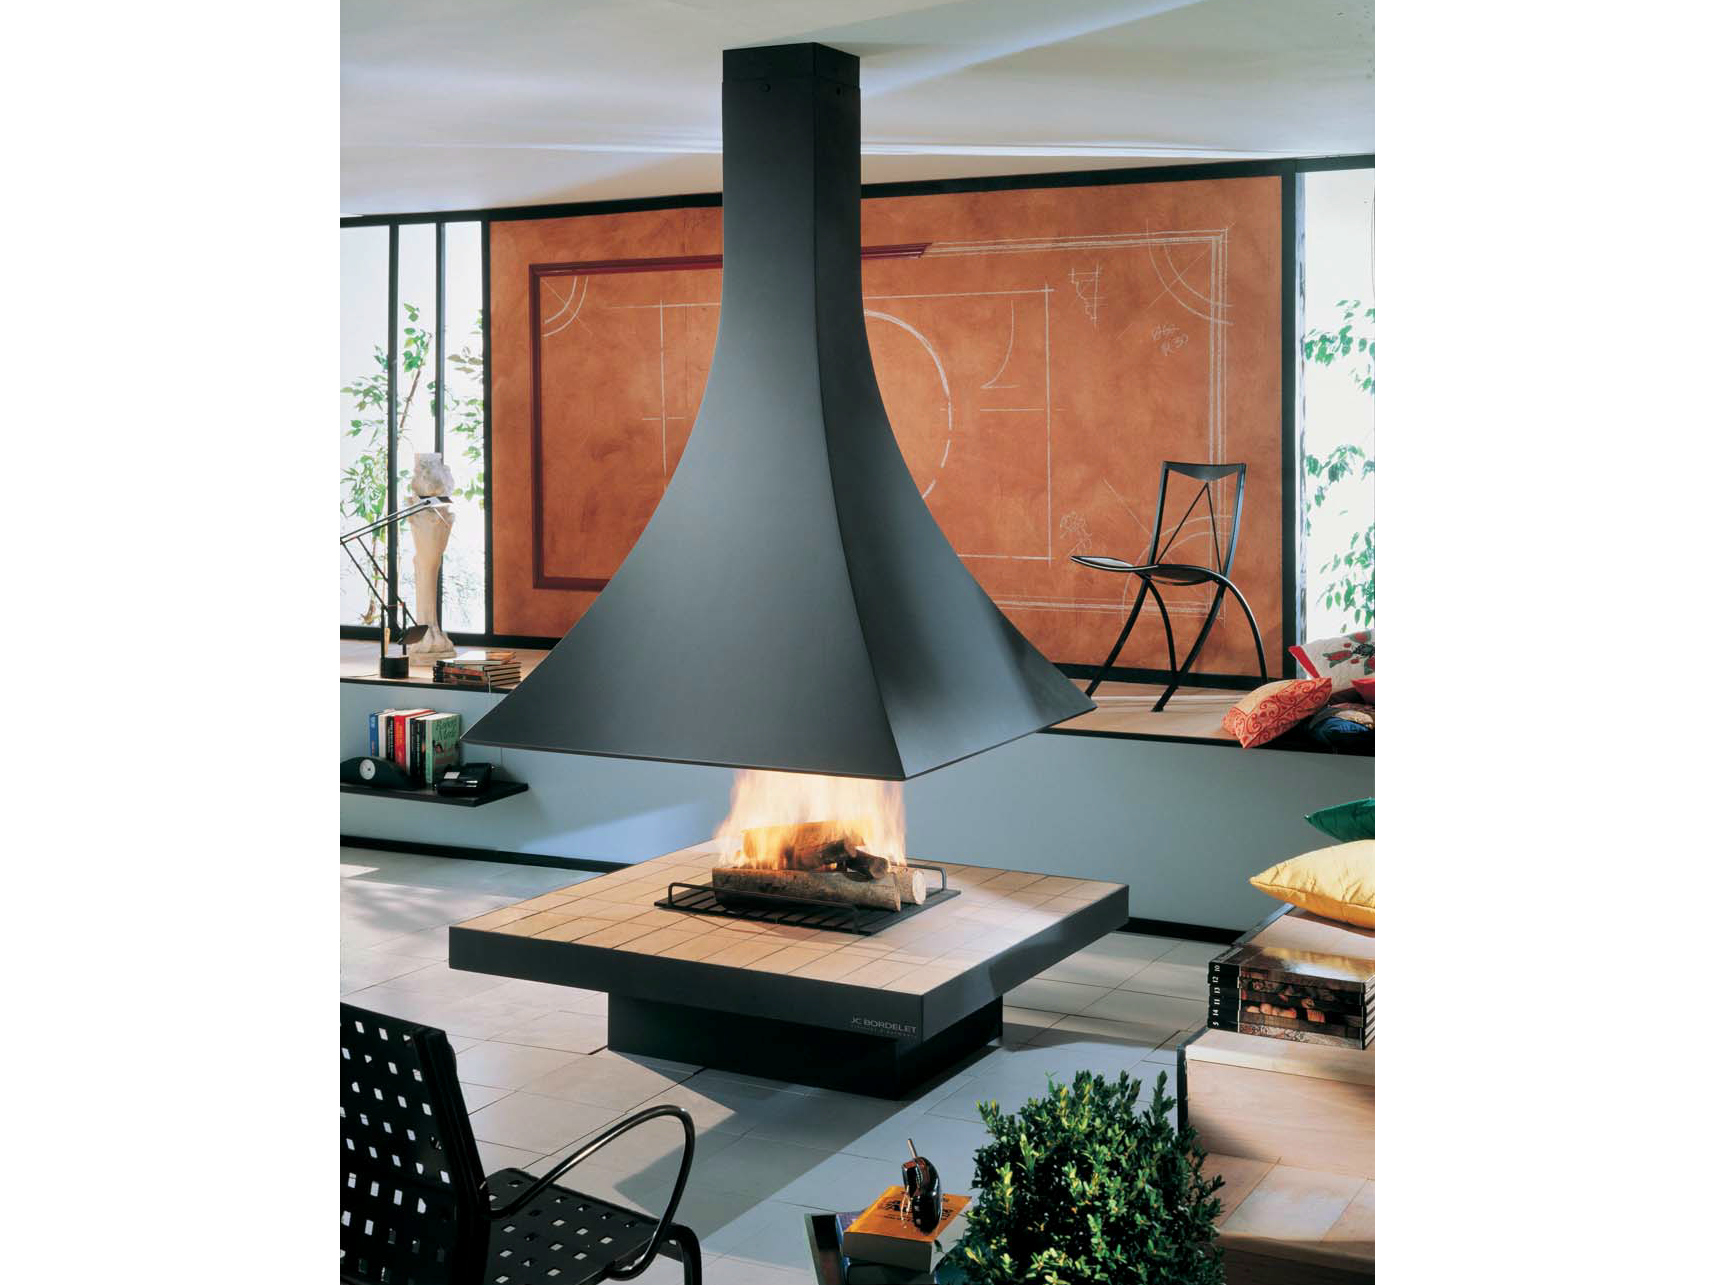 Julietta 985 central fireplace by jc bordelet industries for Central fireplace